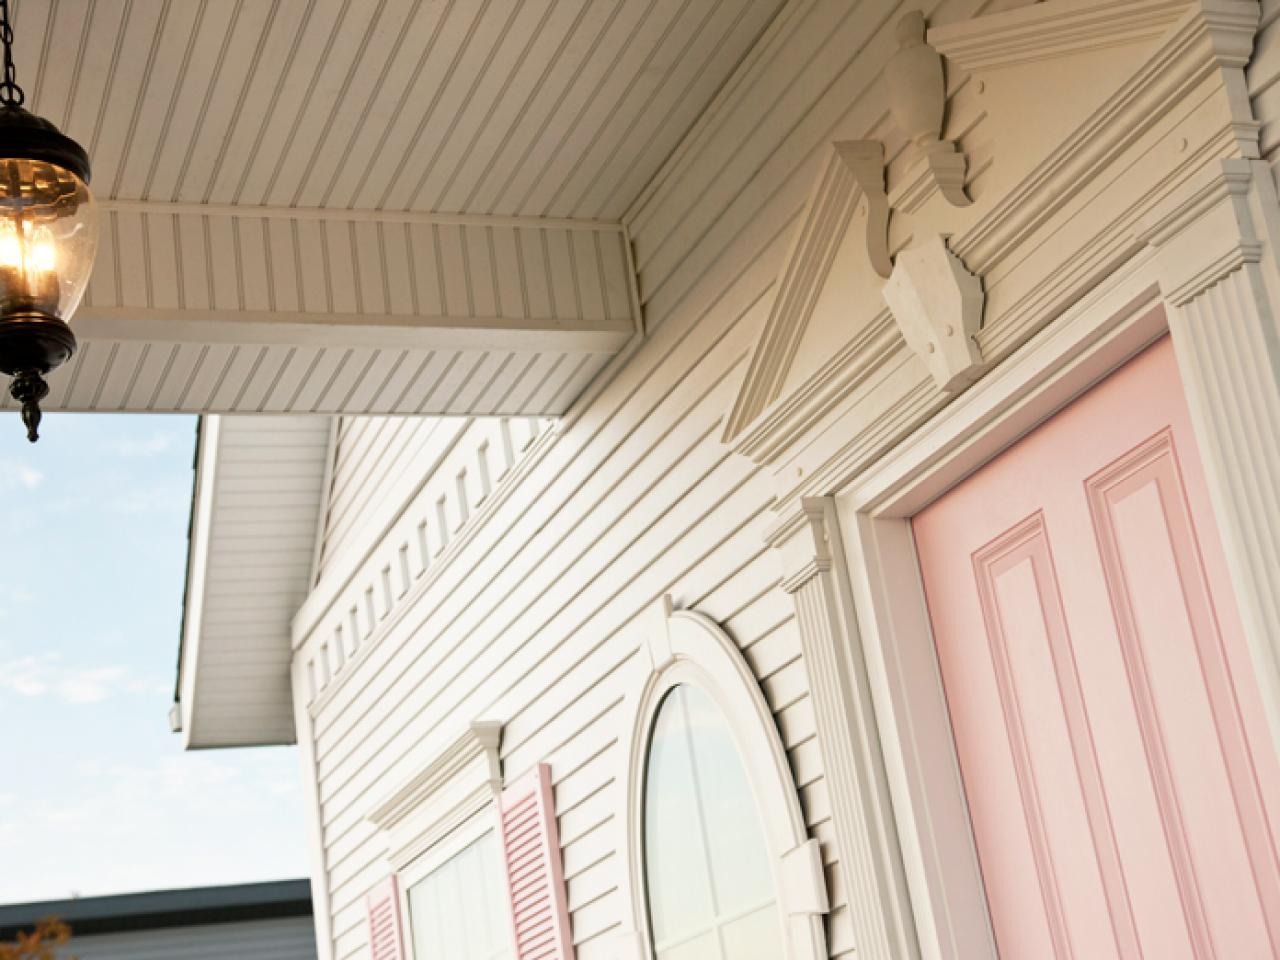 Adding Exterior Trim, Mouldings And Columns To Your Home Can Make ... Part 82